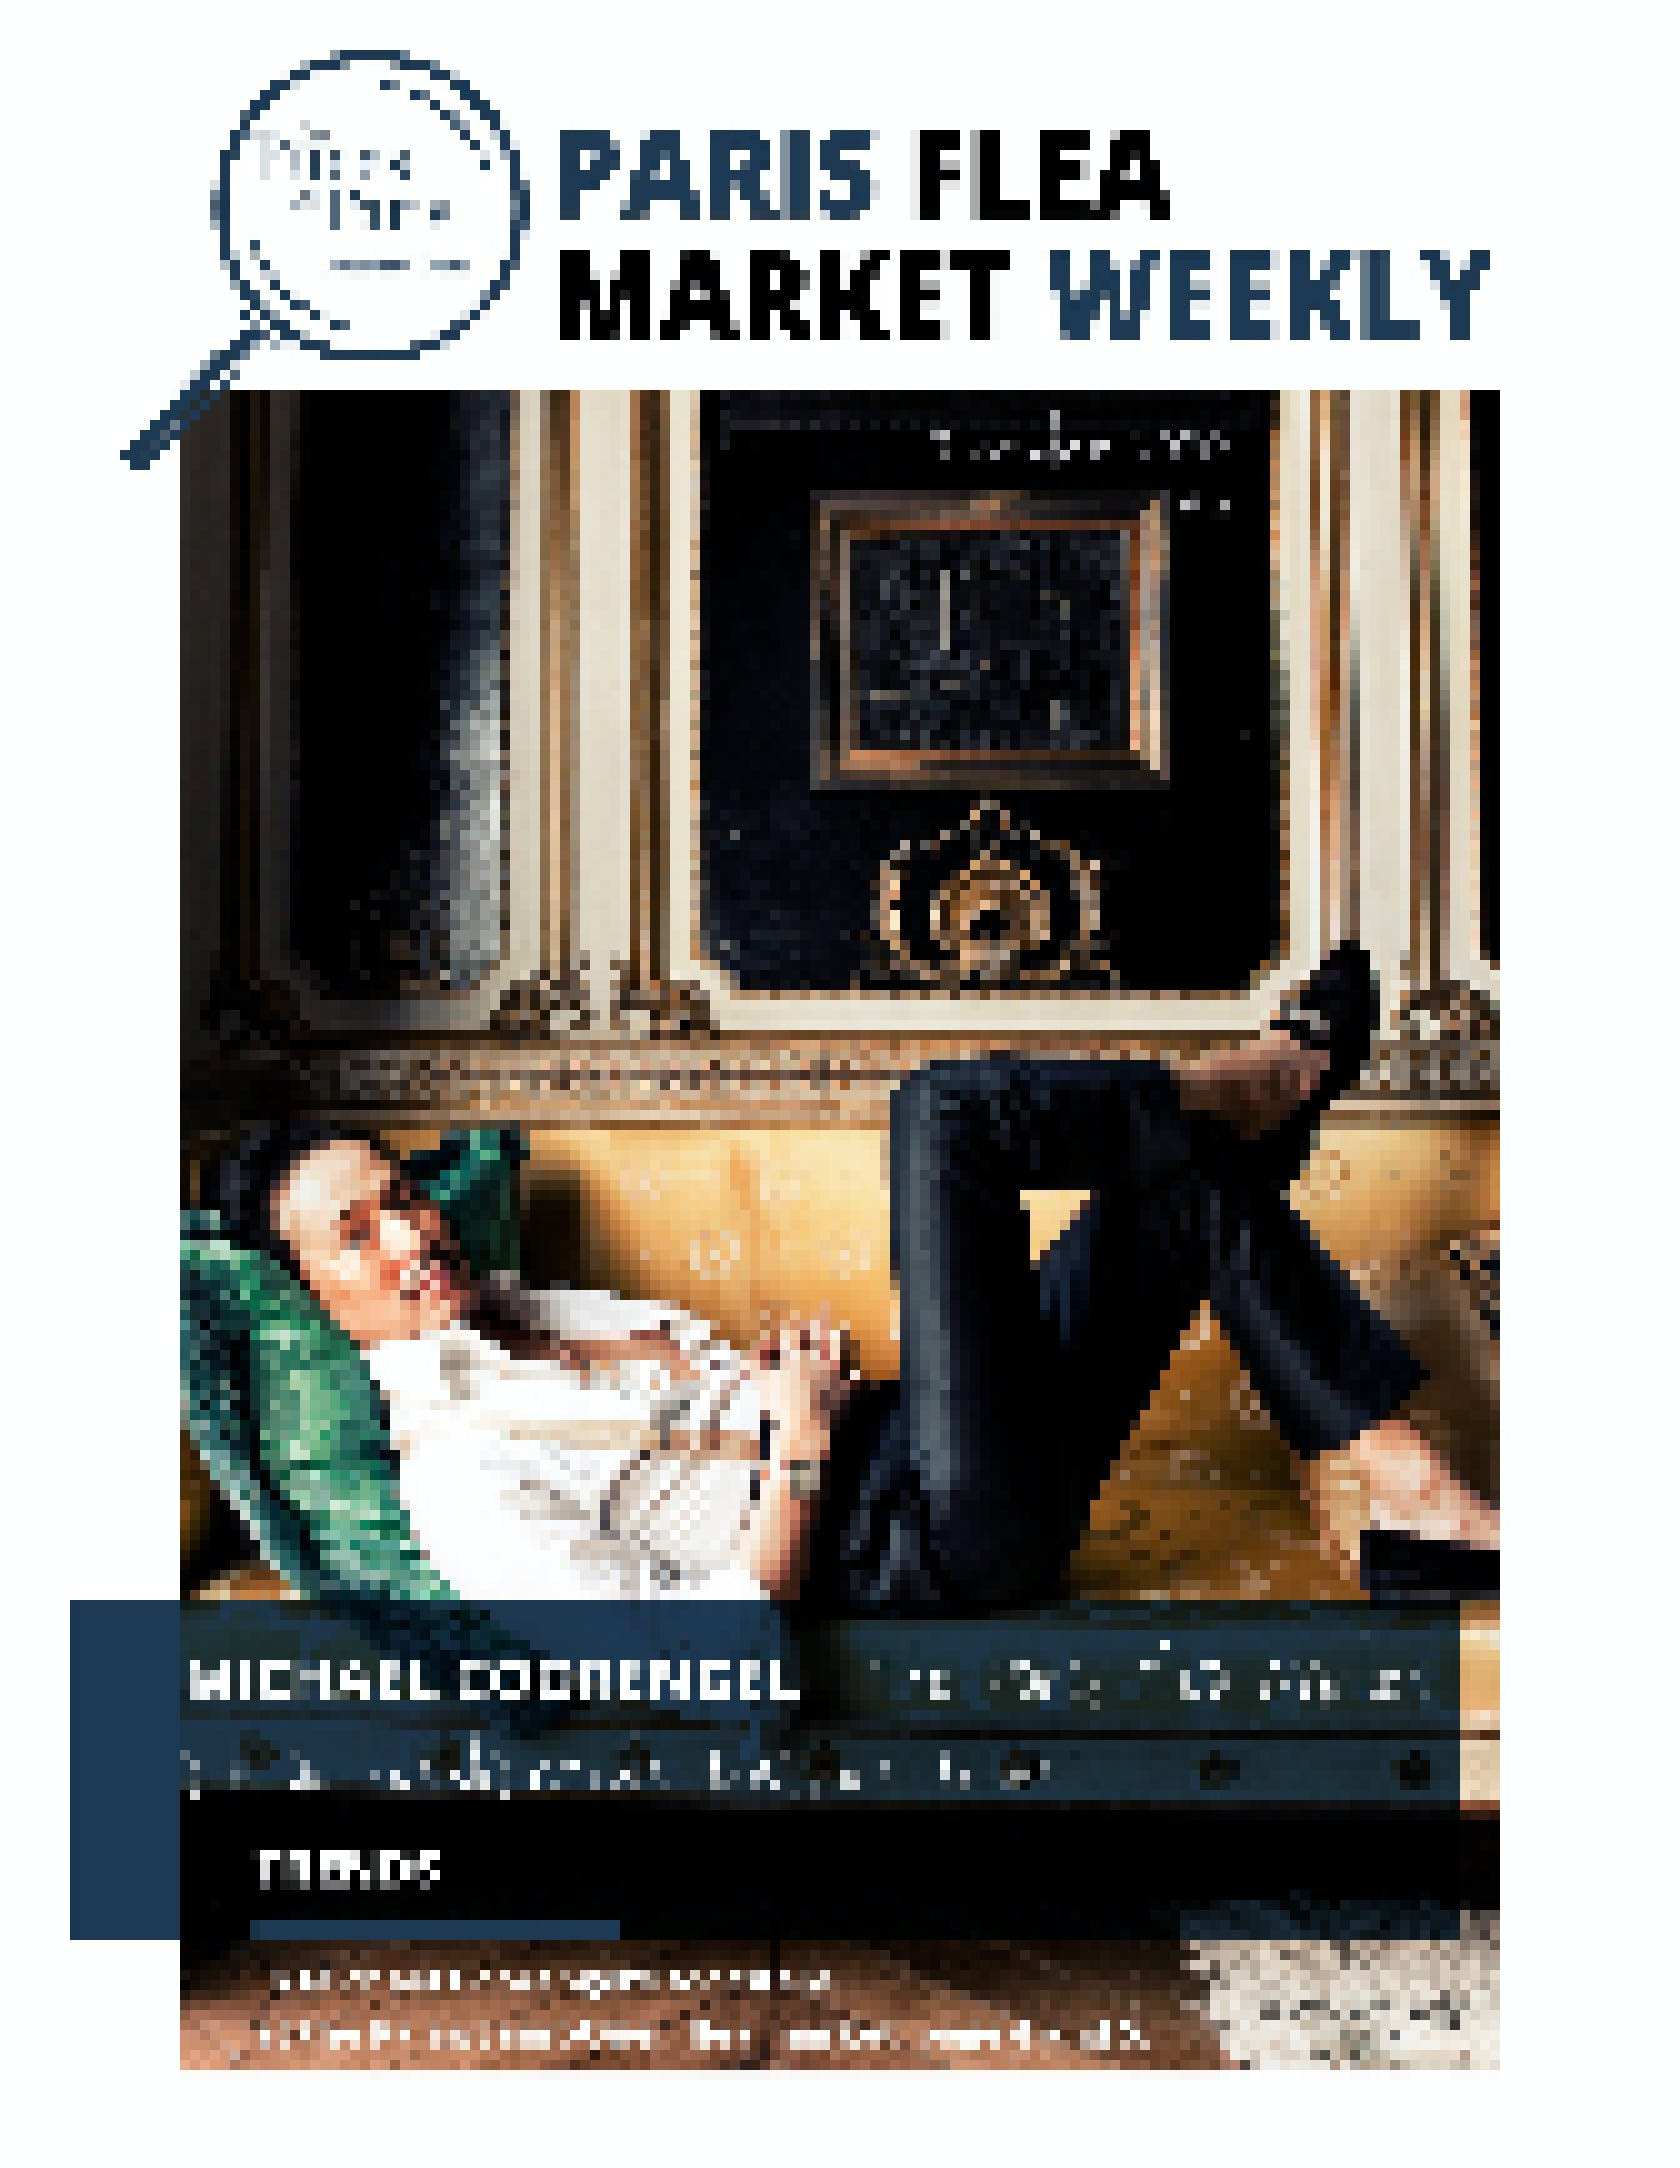 Paris Flea Market Weekly #6 Cover